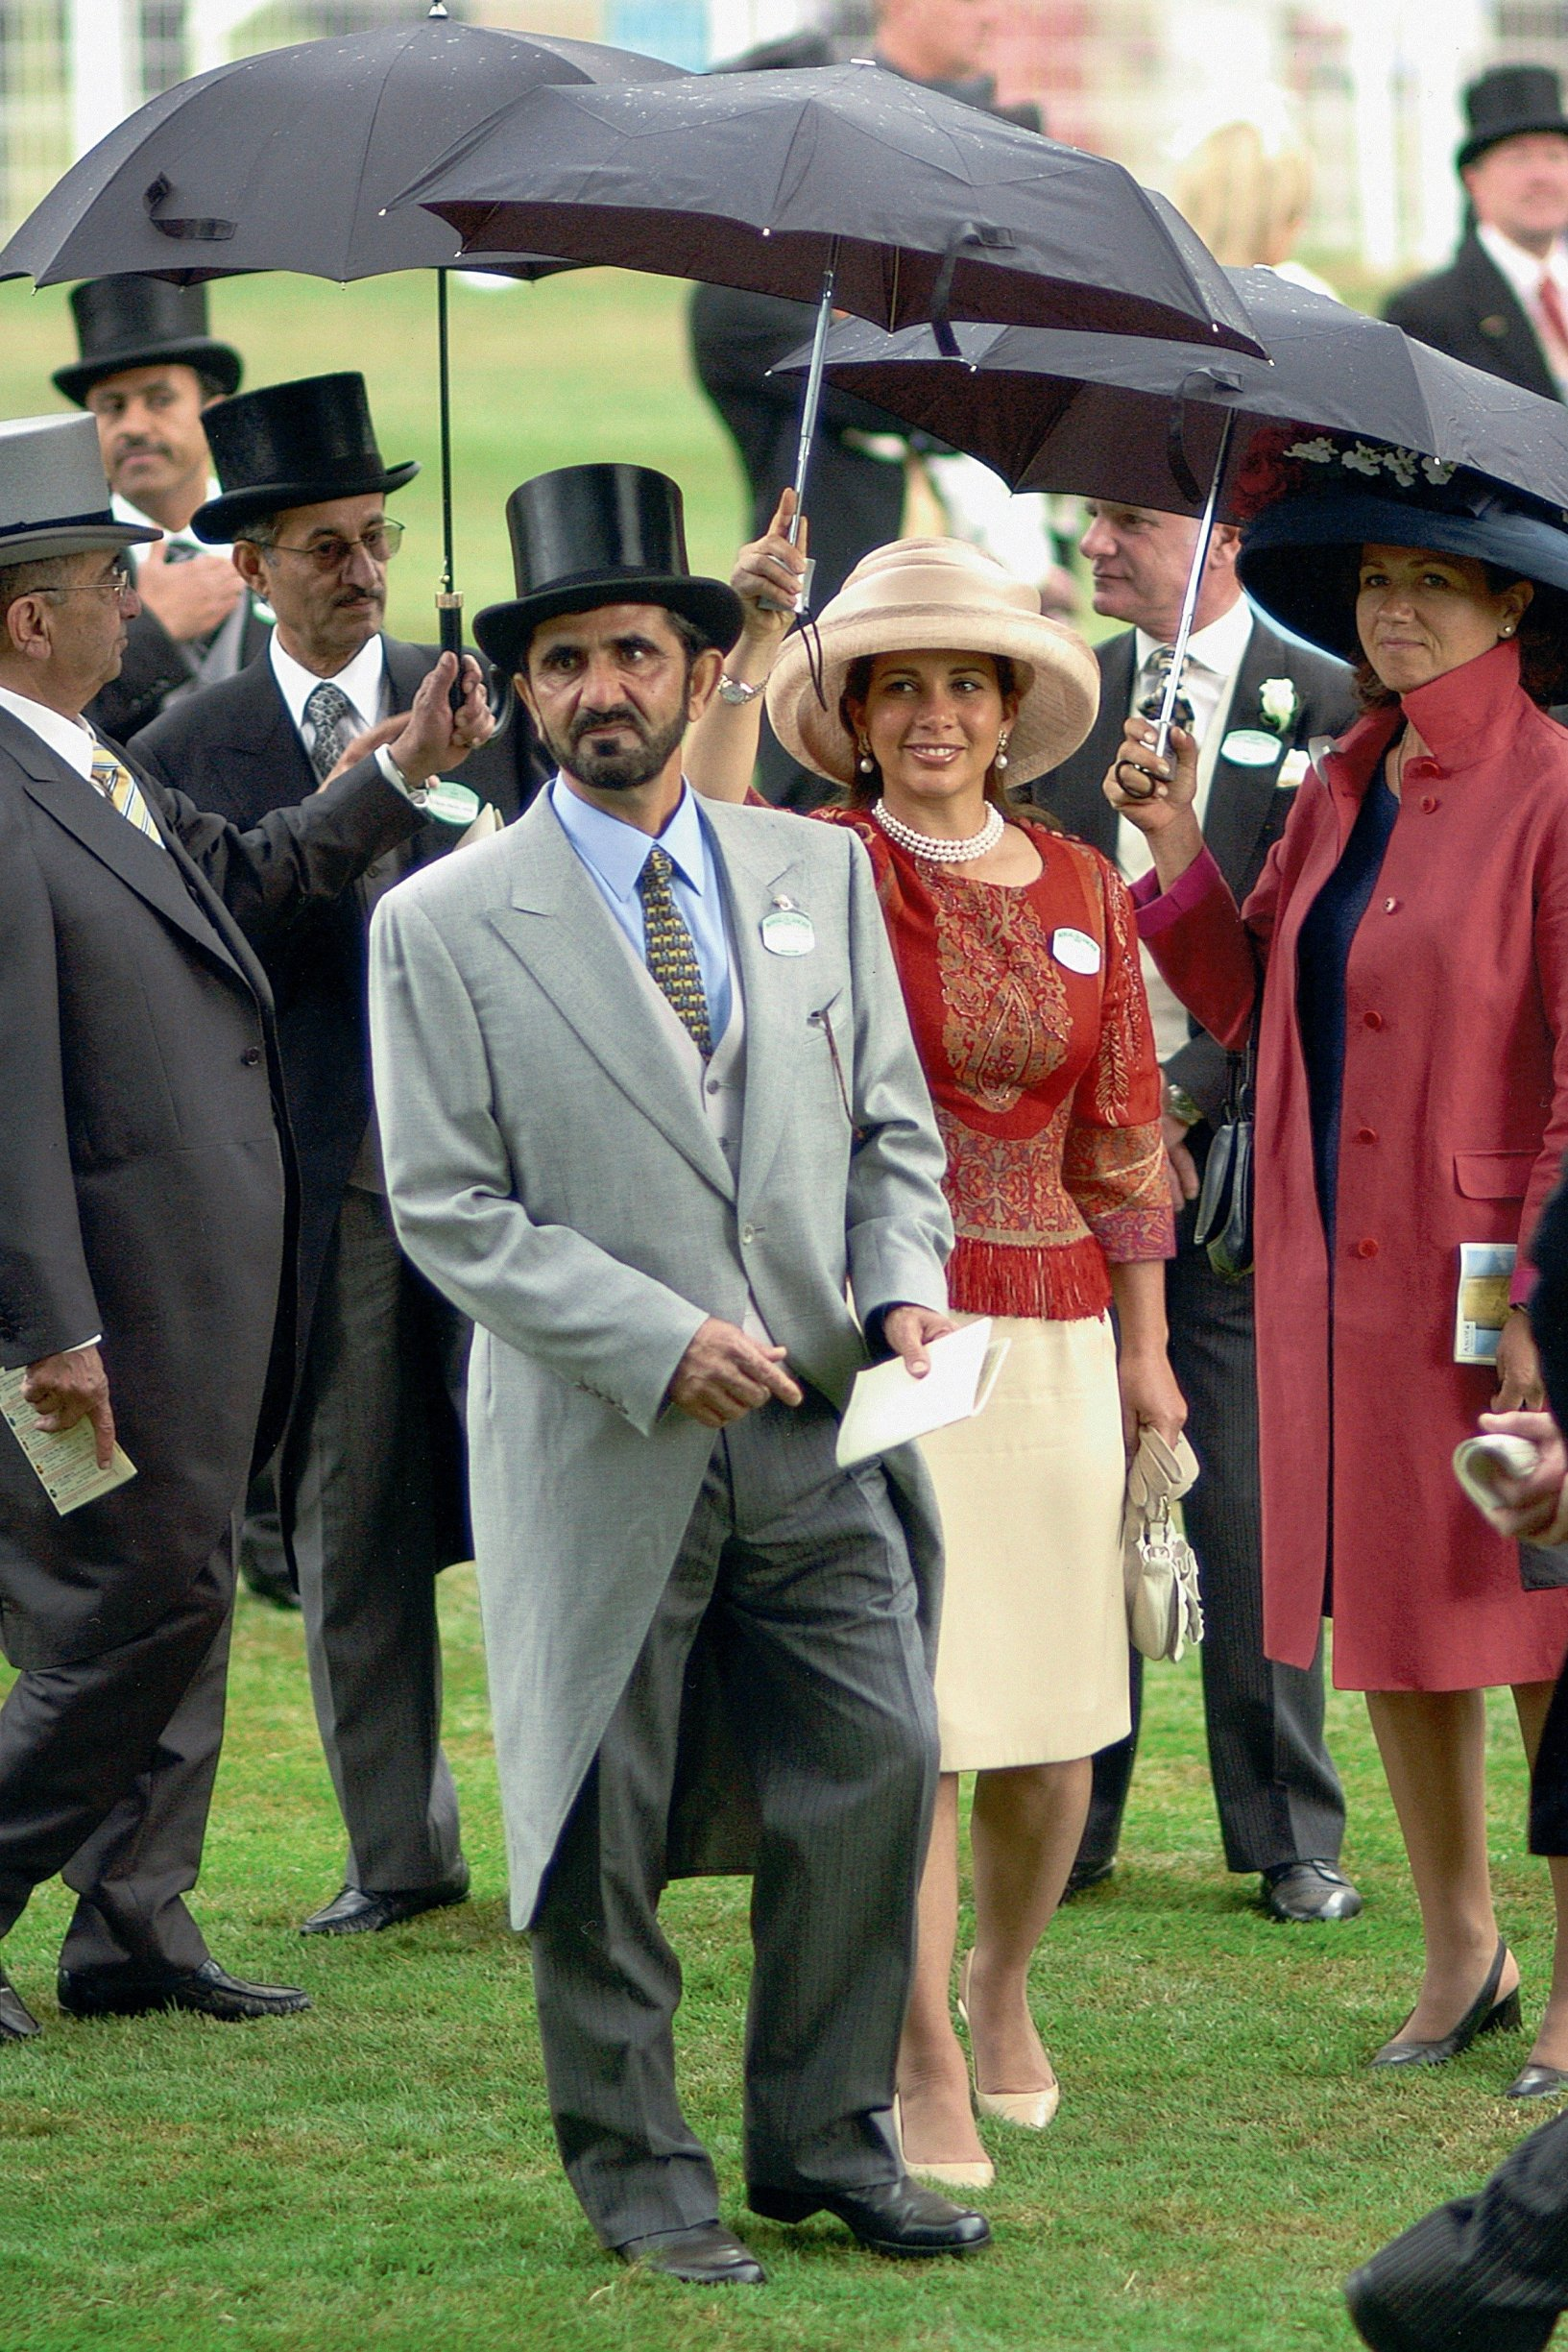 File photo - Undated photo of Dubai's ruler Sheikh Mohammed Bin Rashed Al Maktoum and his wife, Jordan's Princess Haya Bint Al Hussein, who is also president of the FEI (Federation Equestre Internationale). The two royals, who married in 2004 will have at the end of the year their first baby. The younger wife of the ruler of Dubai, the billionaire race horse owner Sheikh Mohammed bin Rashid al-Maktoum, is believed to be staying in a town house near Kensington Palace after fleeing her marriage. Princess Haya bint al-Hussein, 45, has not been seen in public for weeks. One half of one of the sporting worlds most celebrated couples, she failed to appear at Royal Ascot last month with her husband., Image: 453480117, License: Rights-managed, Restrictions: , Model Release: no, Credit line: Profimedia, Abaca Press